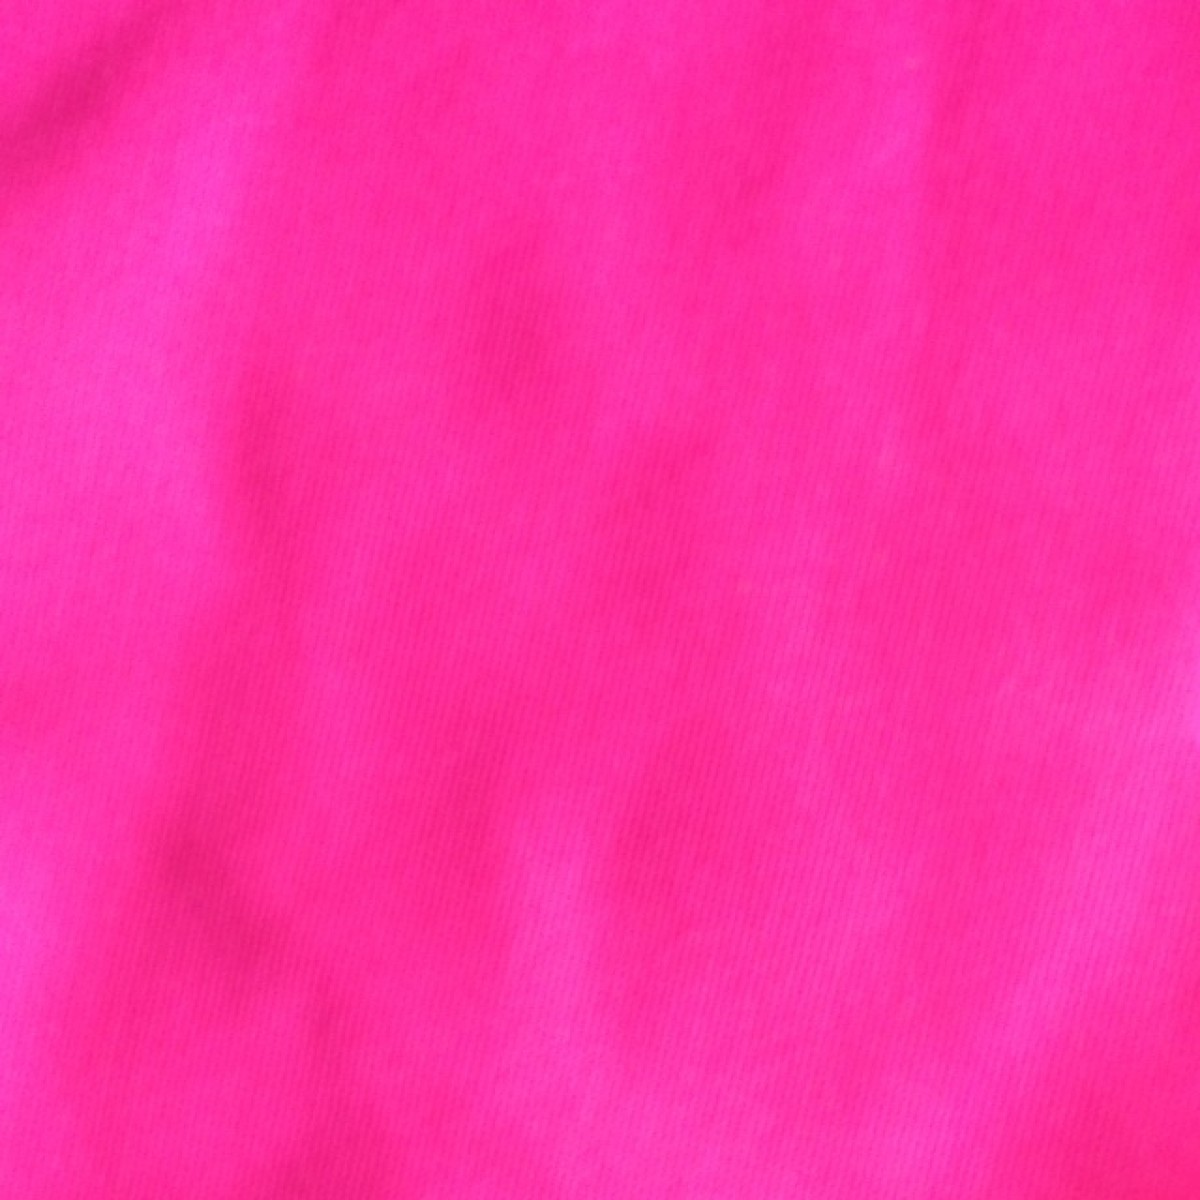 neon pink background wallpaper wallpapersafari